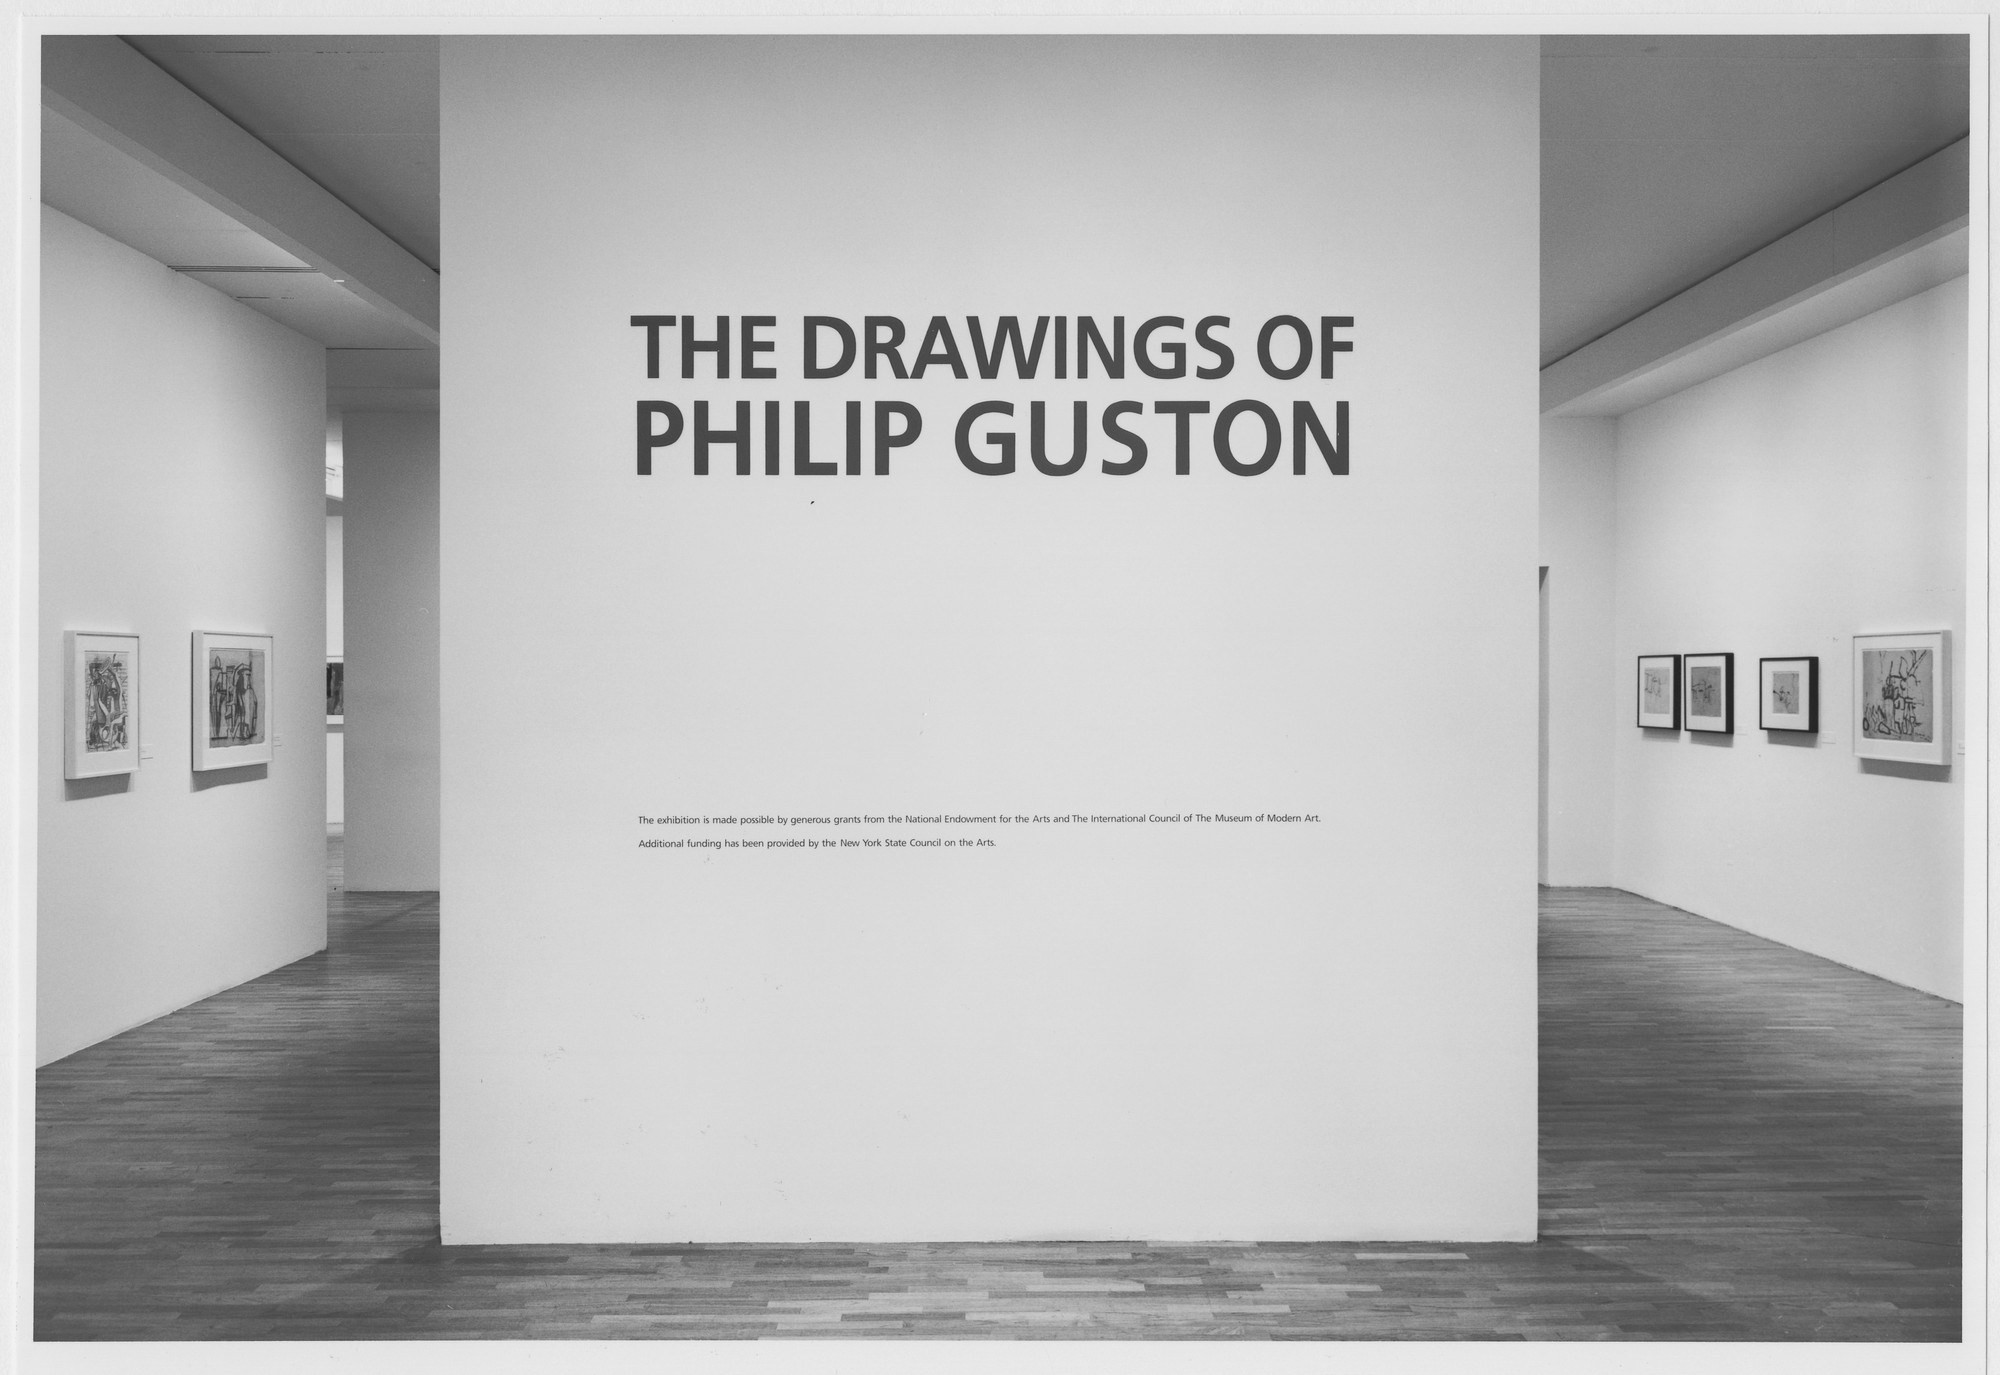 "Installation view of the exhibition, ""The Drawings of Philip Guston"" September 7, 1988–November 1, 1988. Photographic Archive. The Museum of Modern Art Archives, New York. IN1494.1. Photograph by Mali Olatunji."